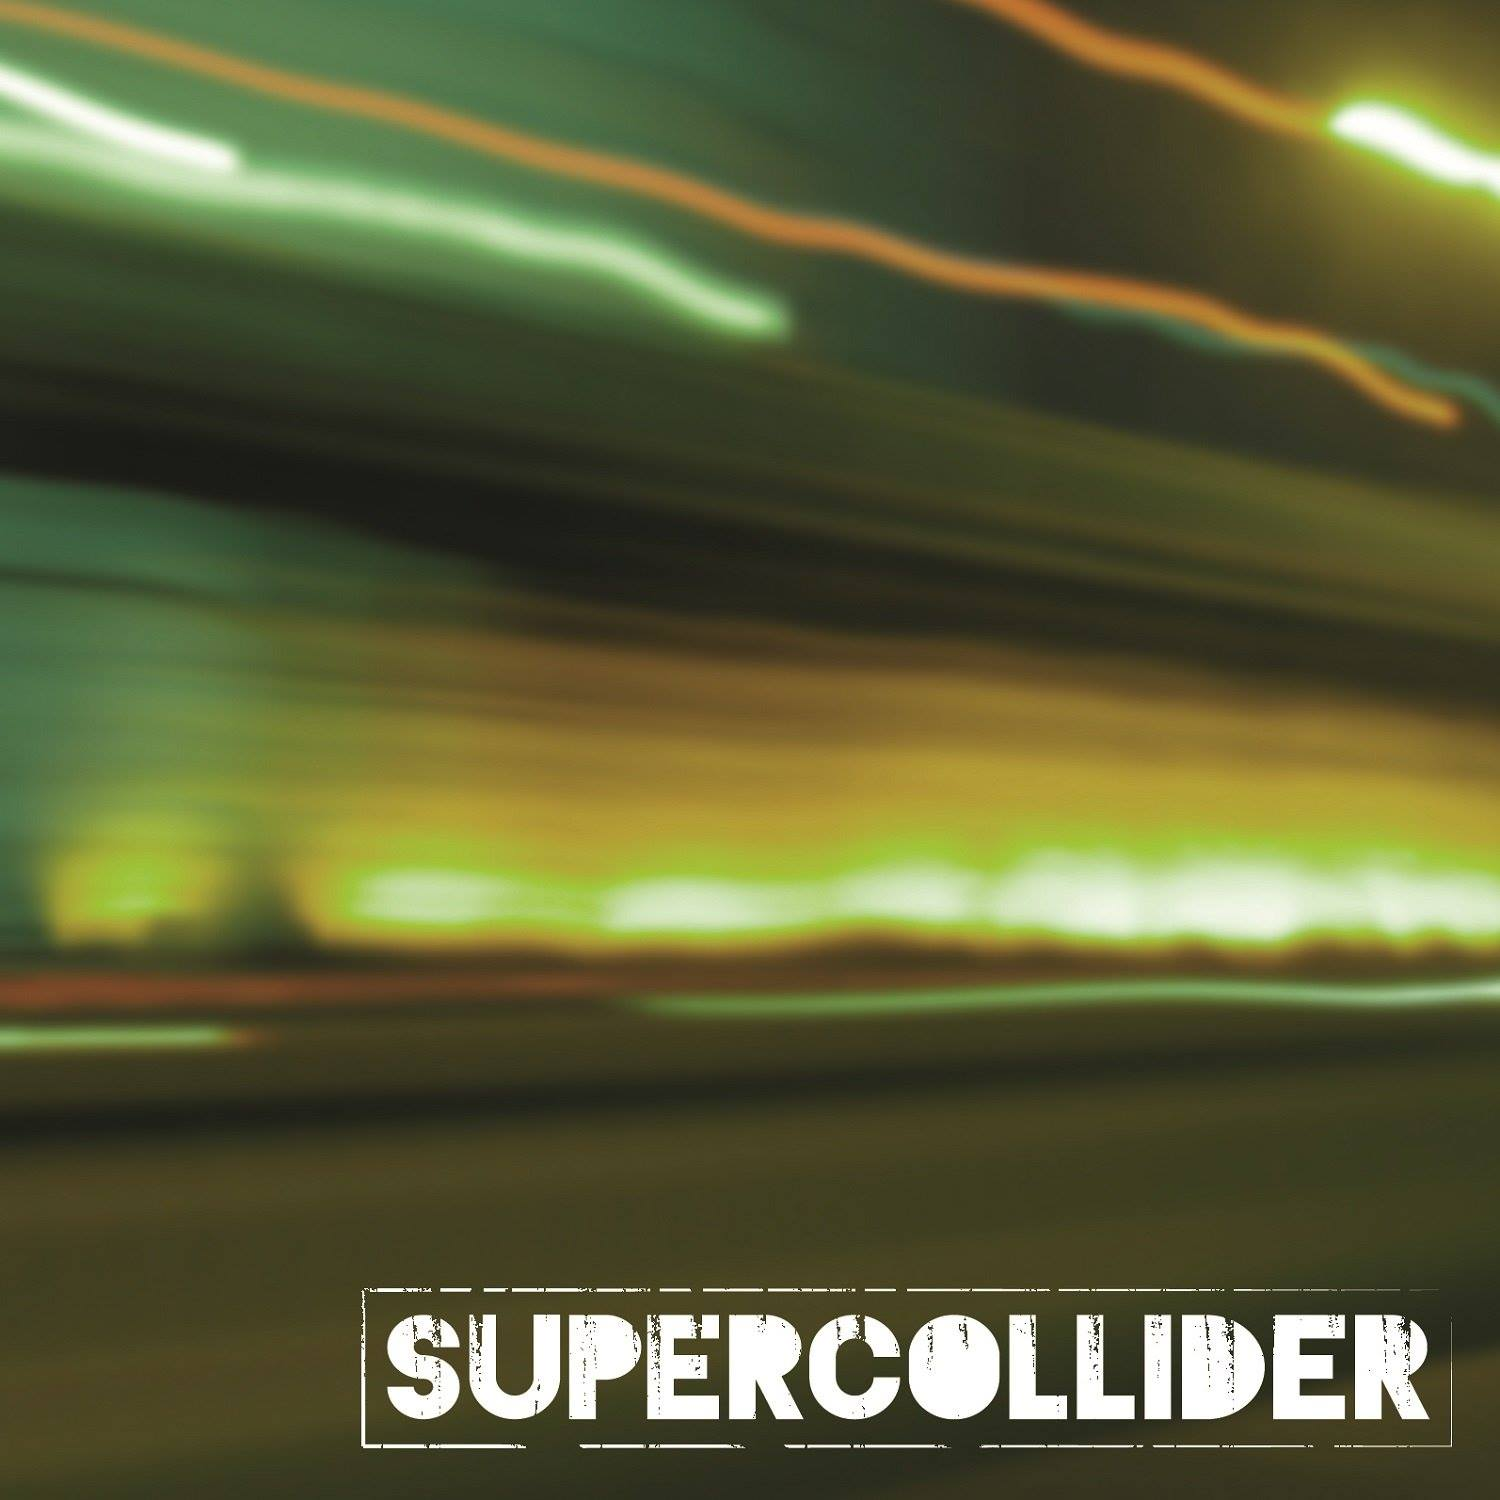 Il british rock dei Supercollider